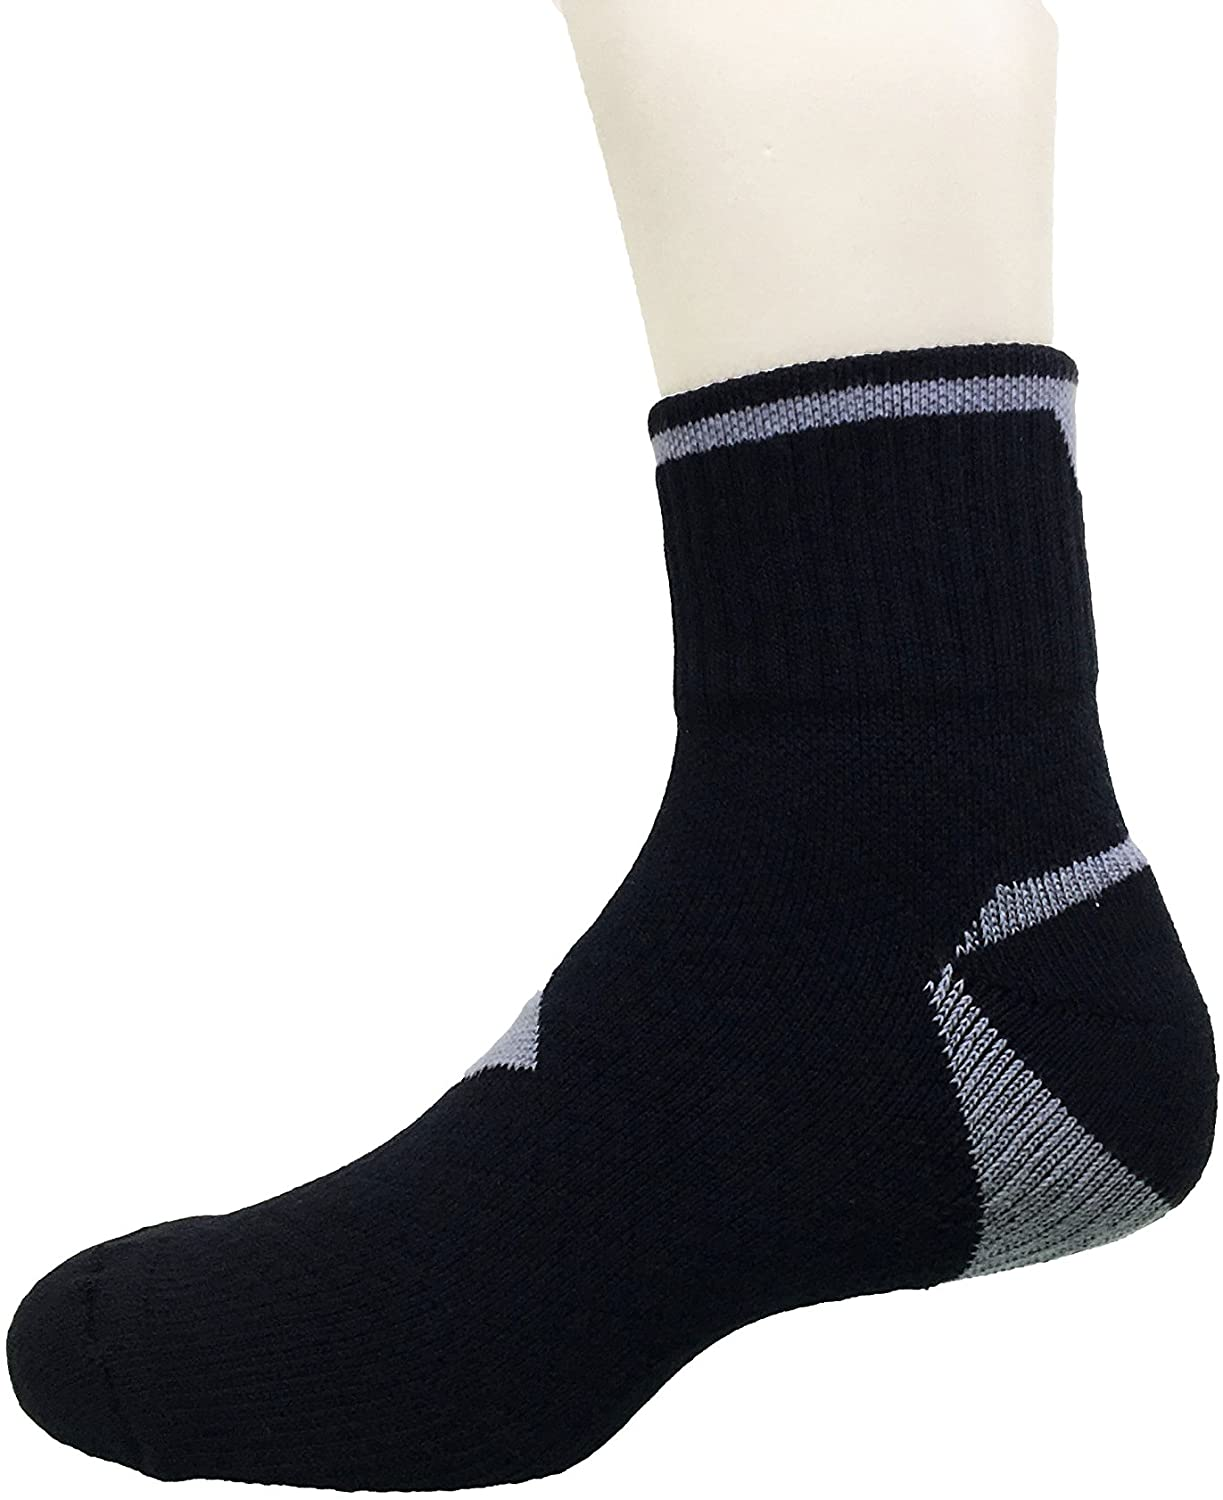 Kuan Yang Bamboo Charcoal Sports Ankle Functional Socks 0101